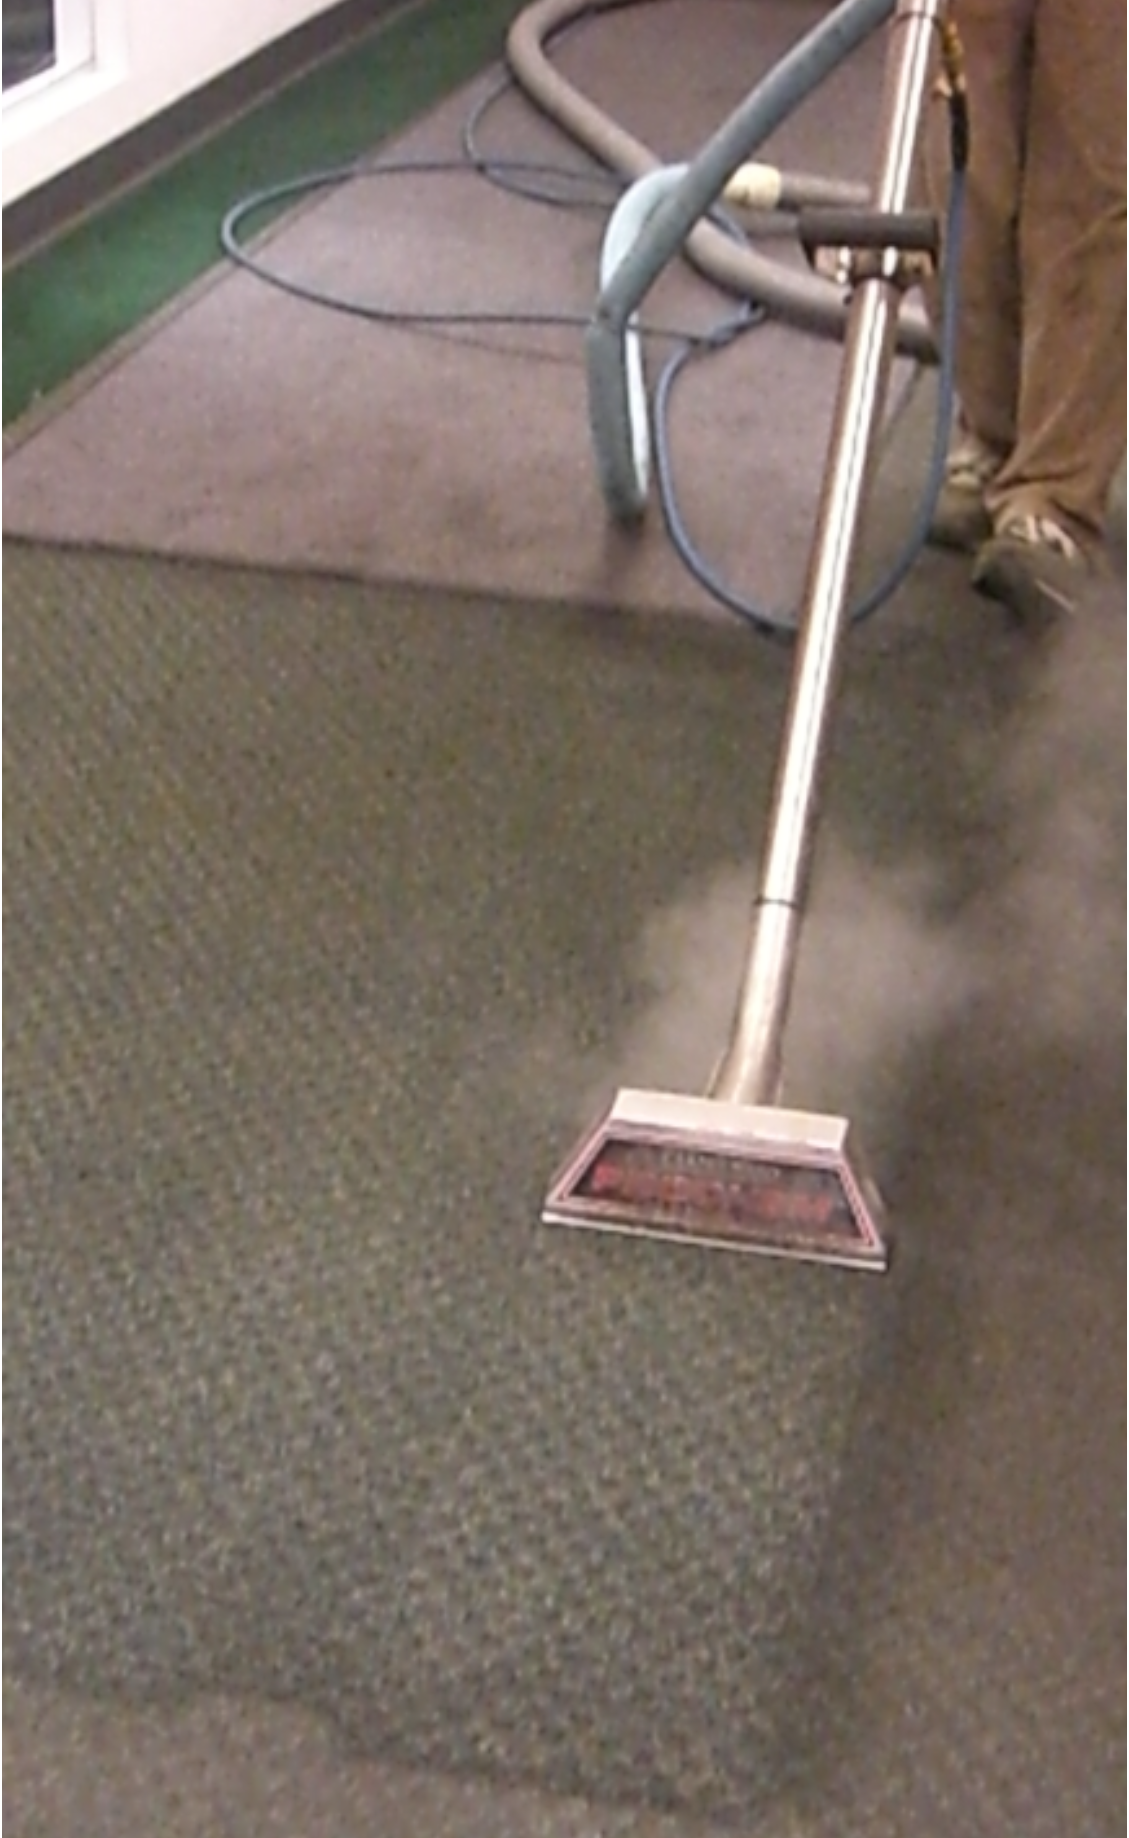 Super Steamers Carpet Cleaners image 3